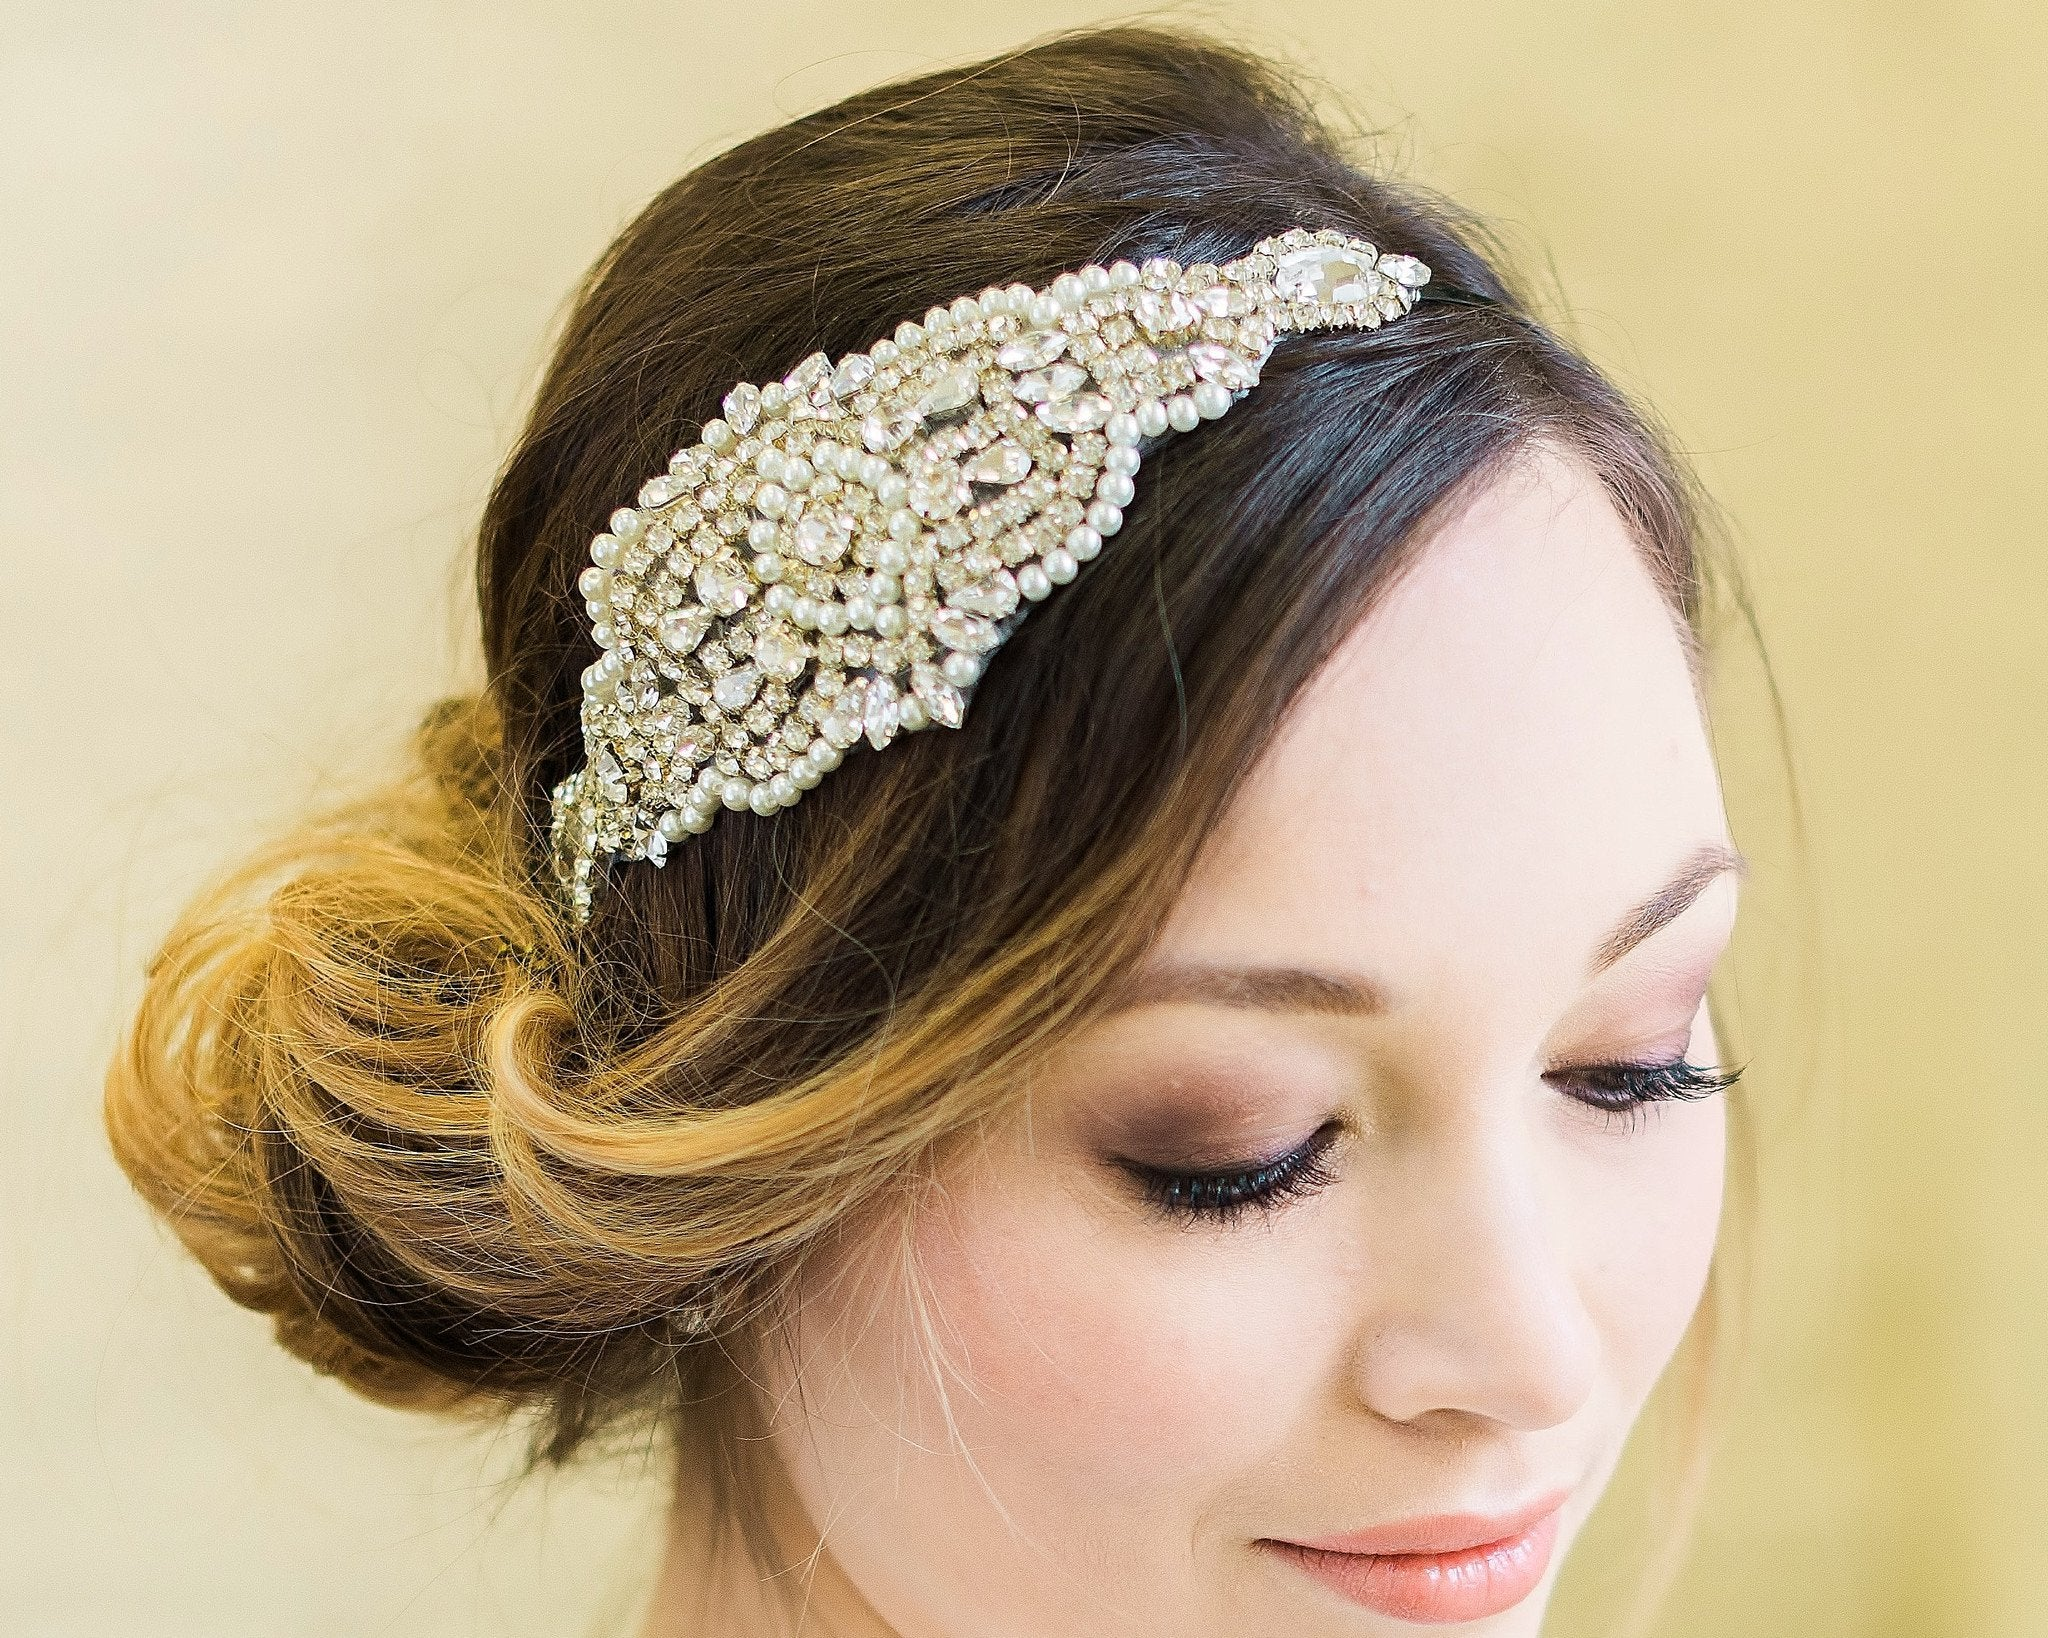 Embellished Applique Headband, Caroline 3